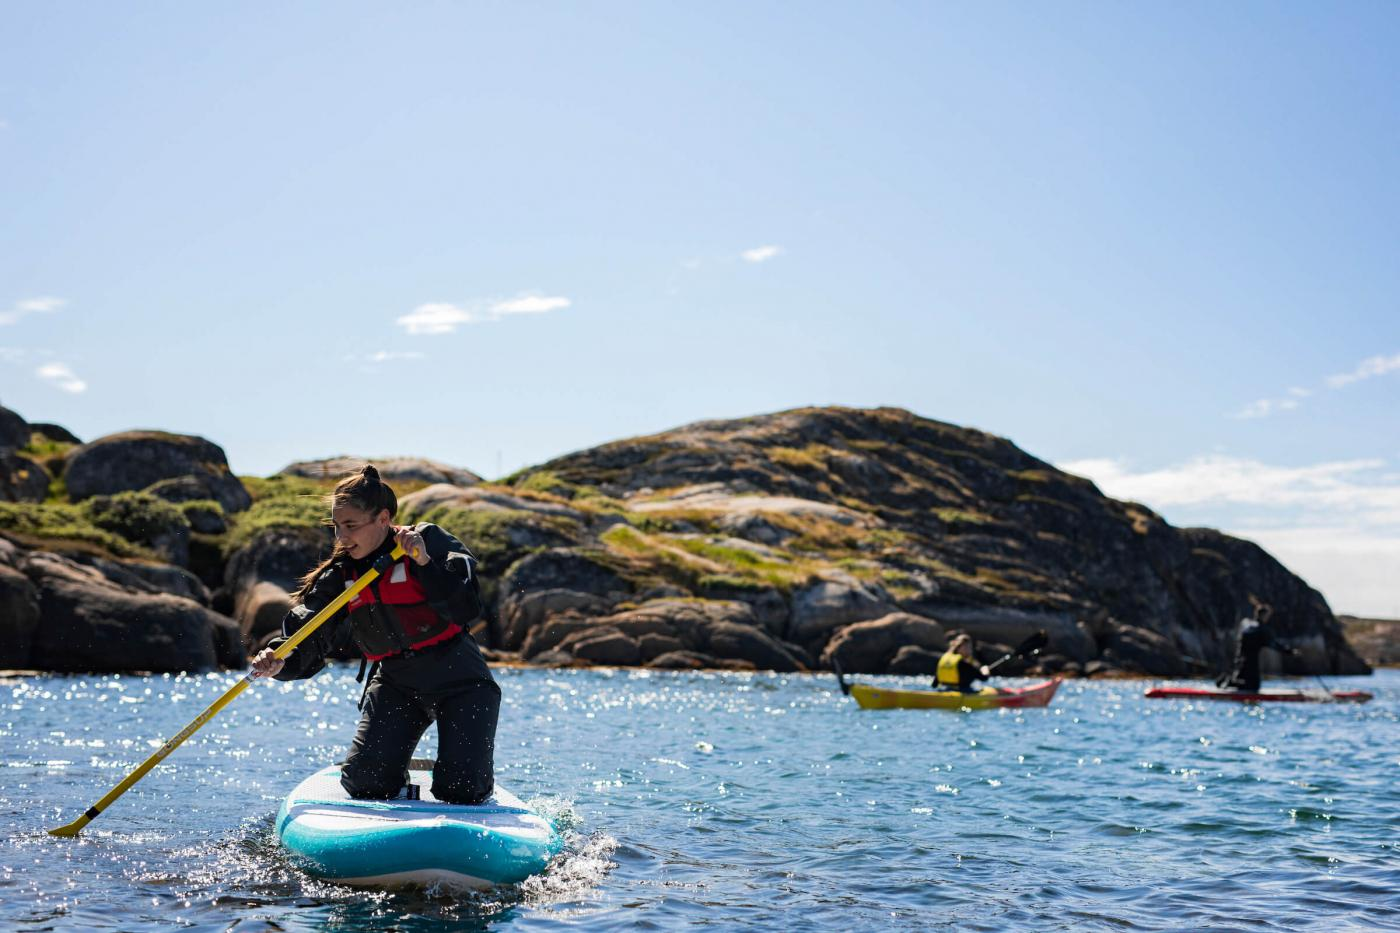 SUP and kayakers in Sisimiut. Photo - Aningaaq R. Carlsen, Visit Greenland